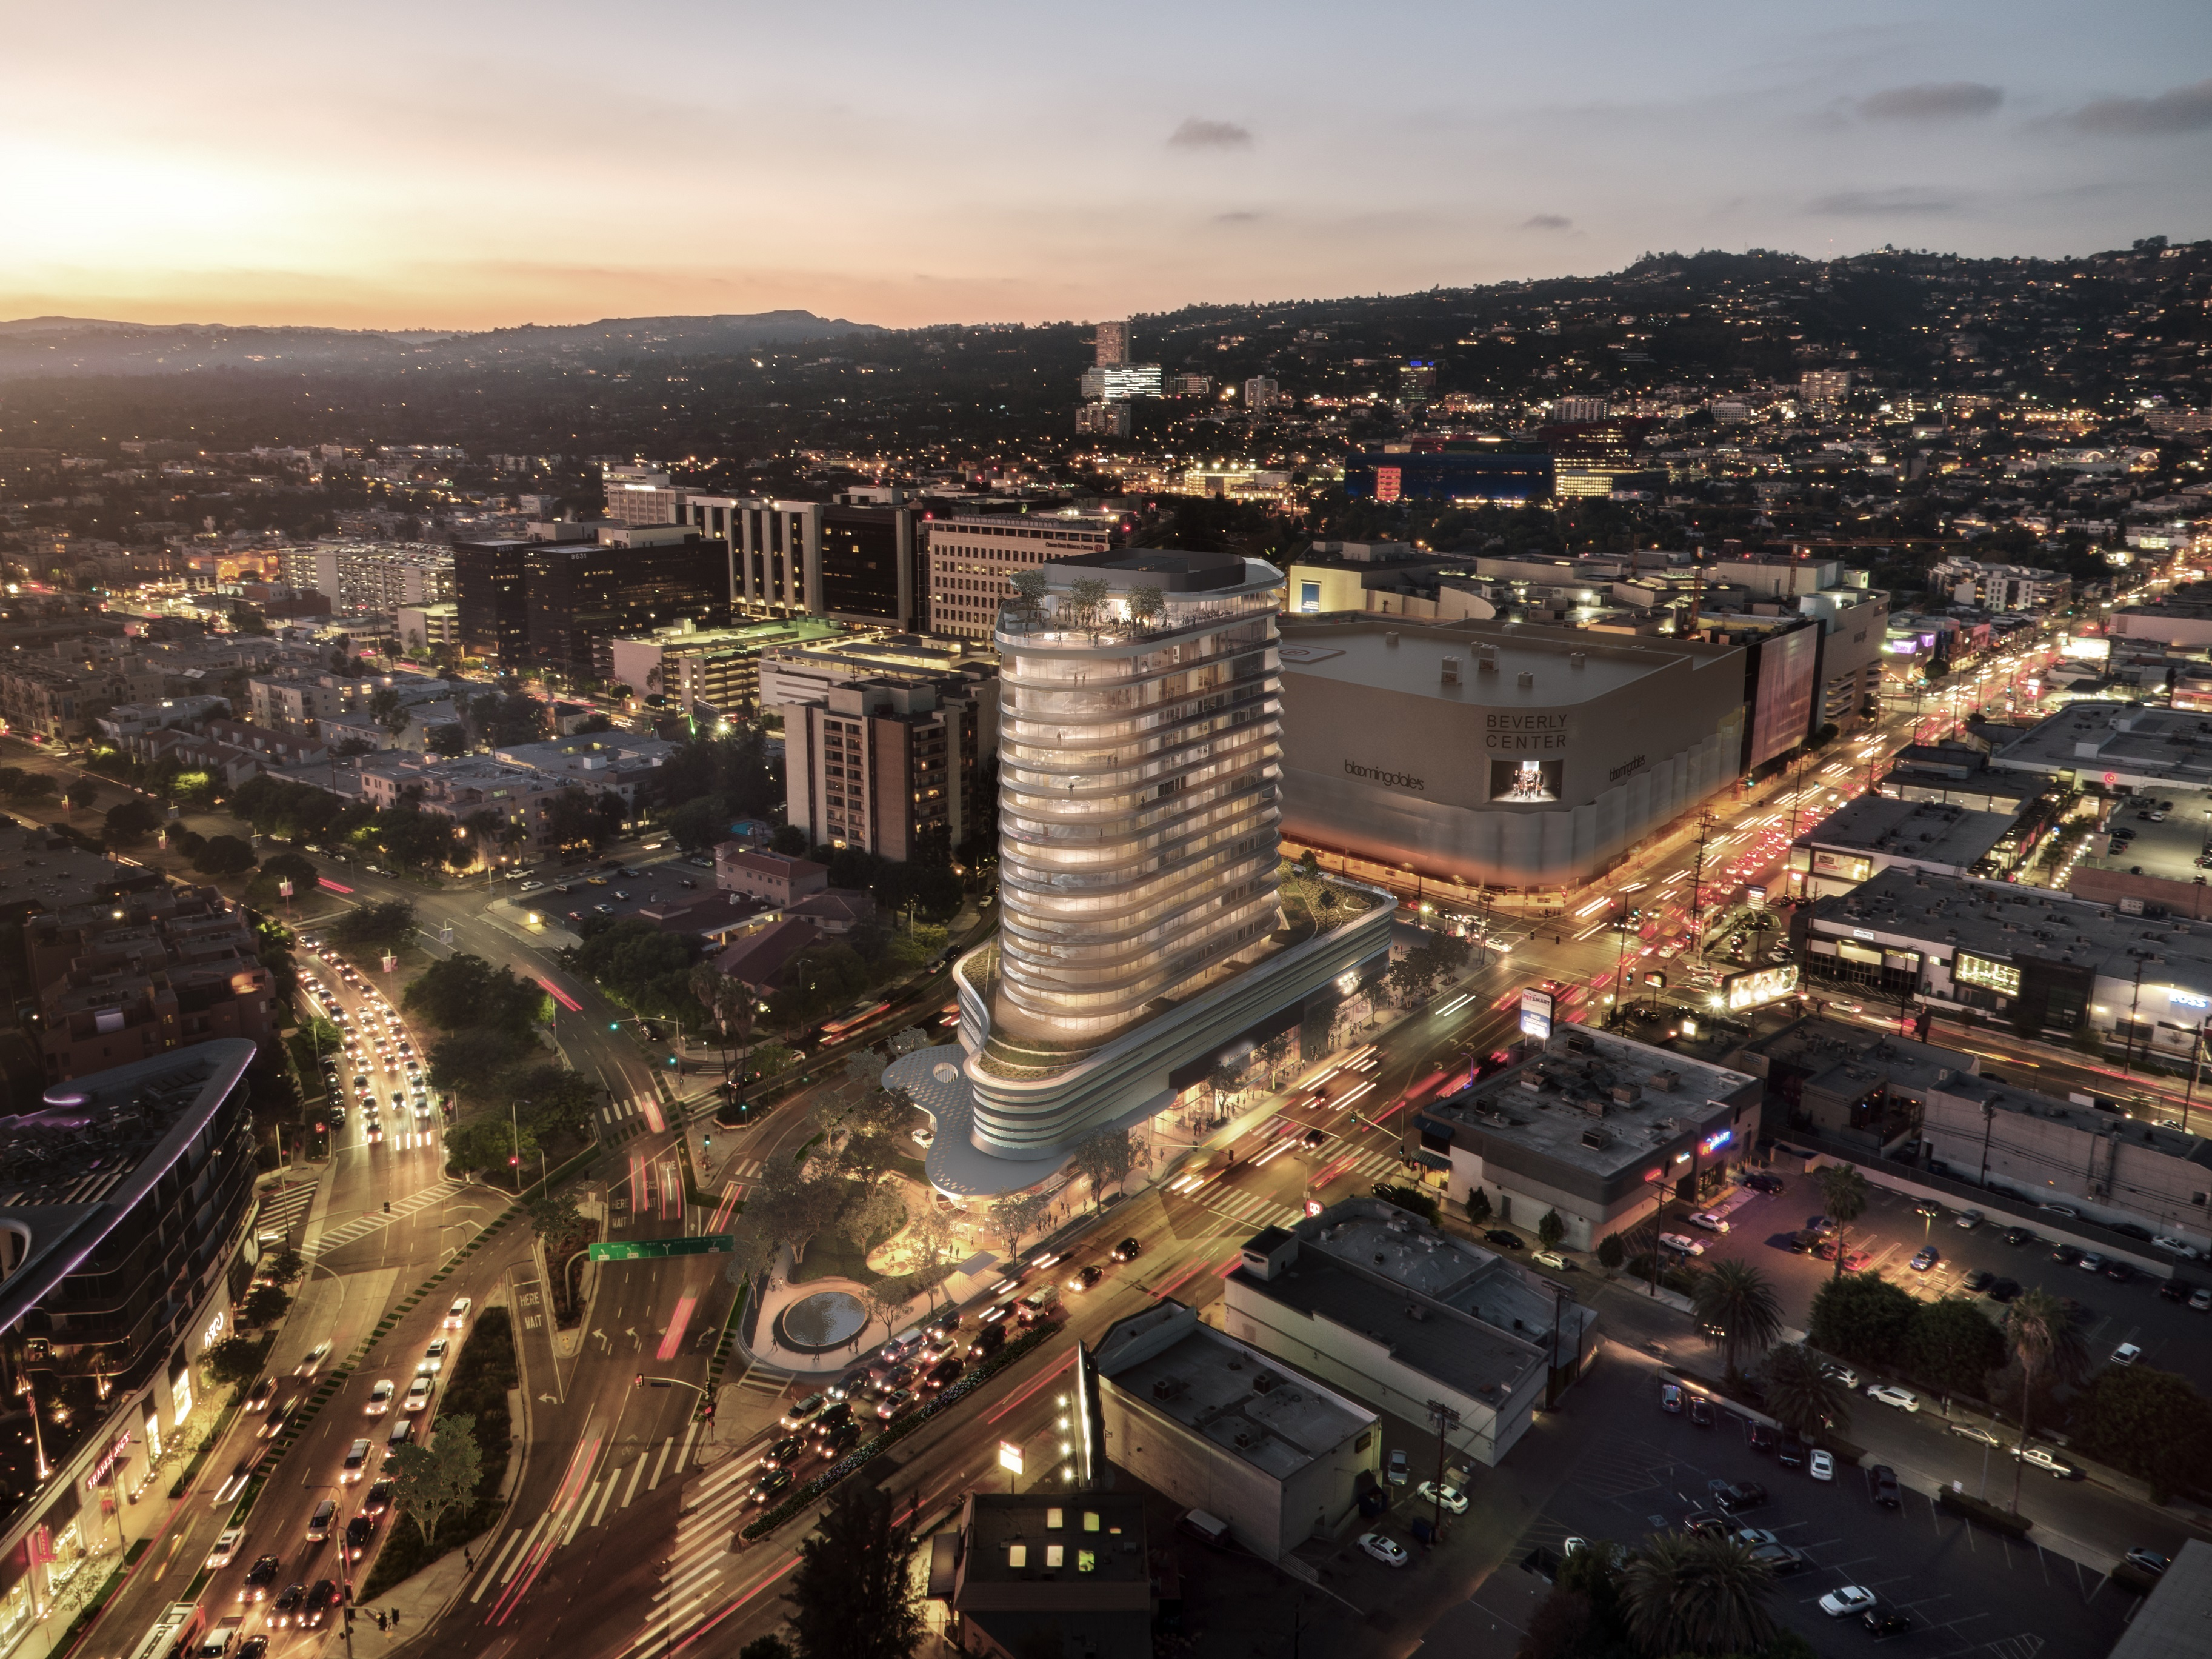 A rendering of the 333 La Cienega project at night.